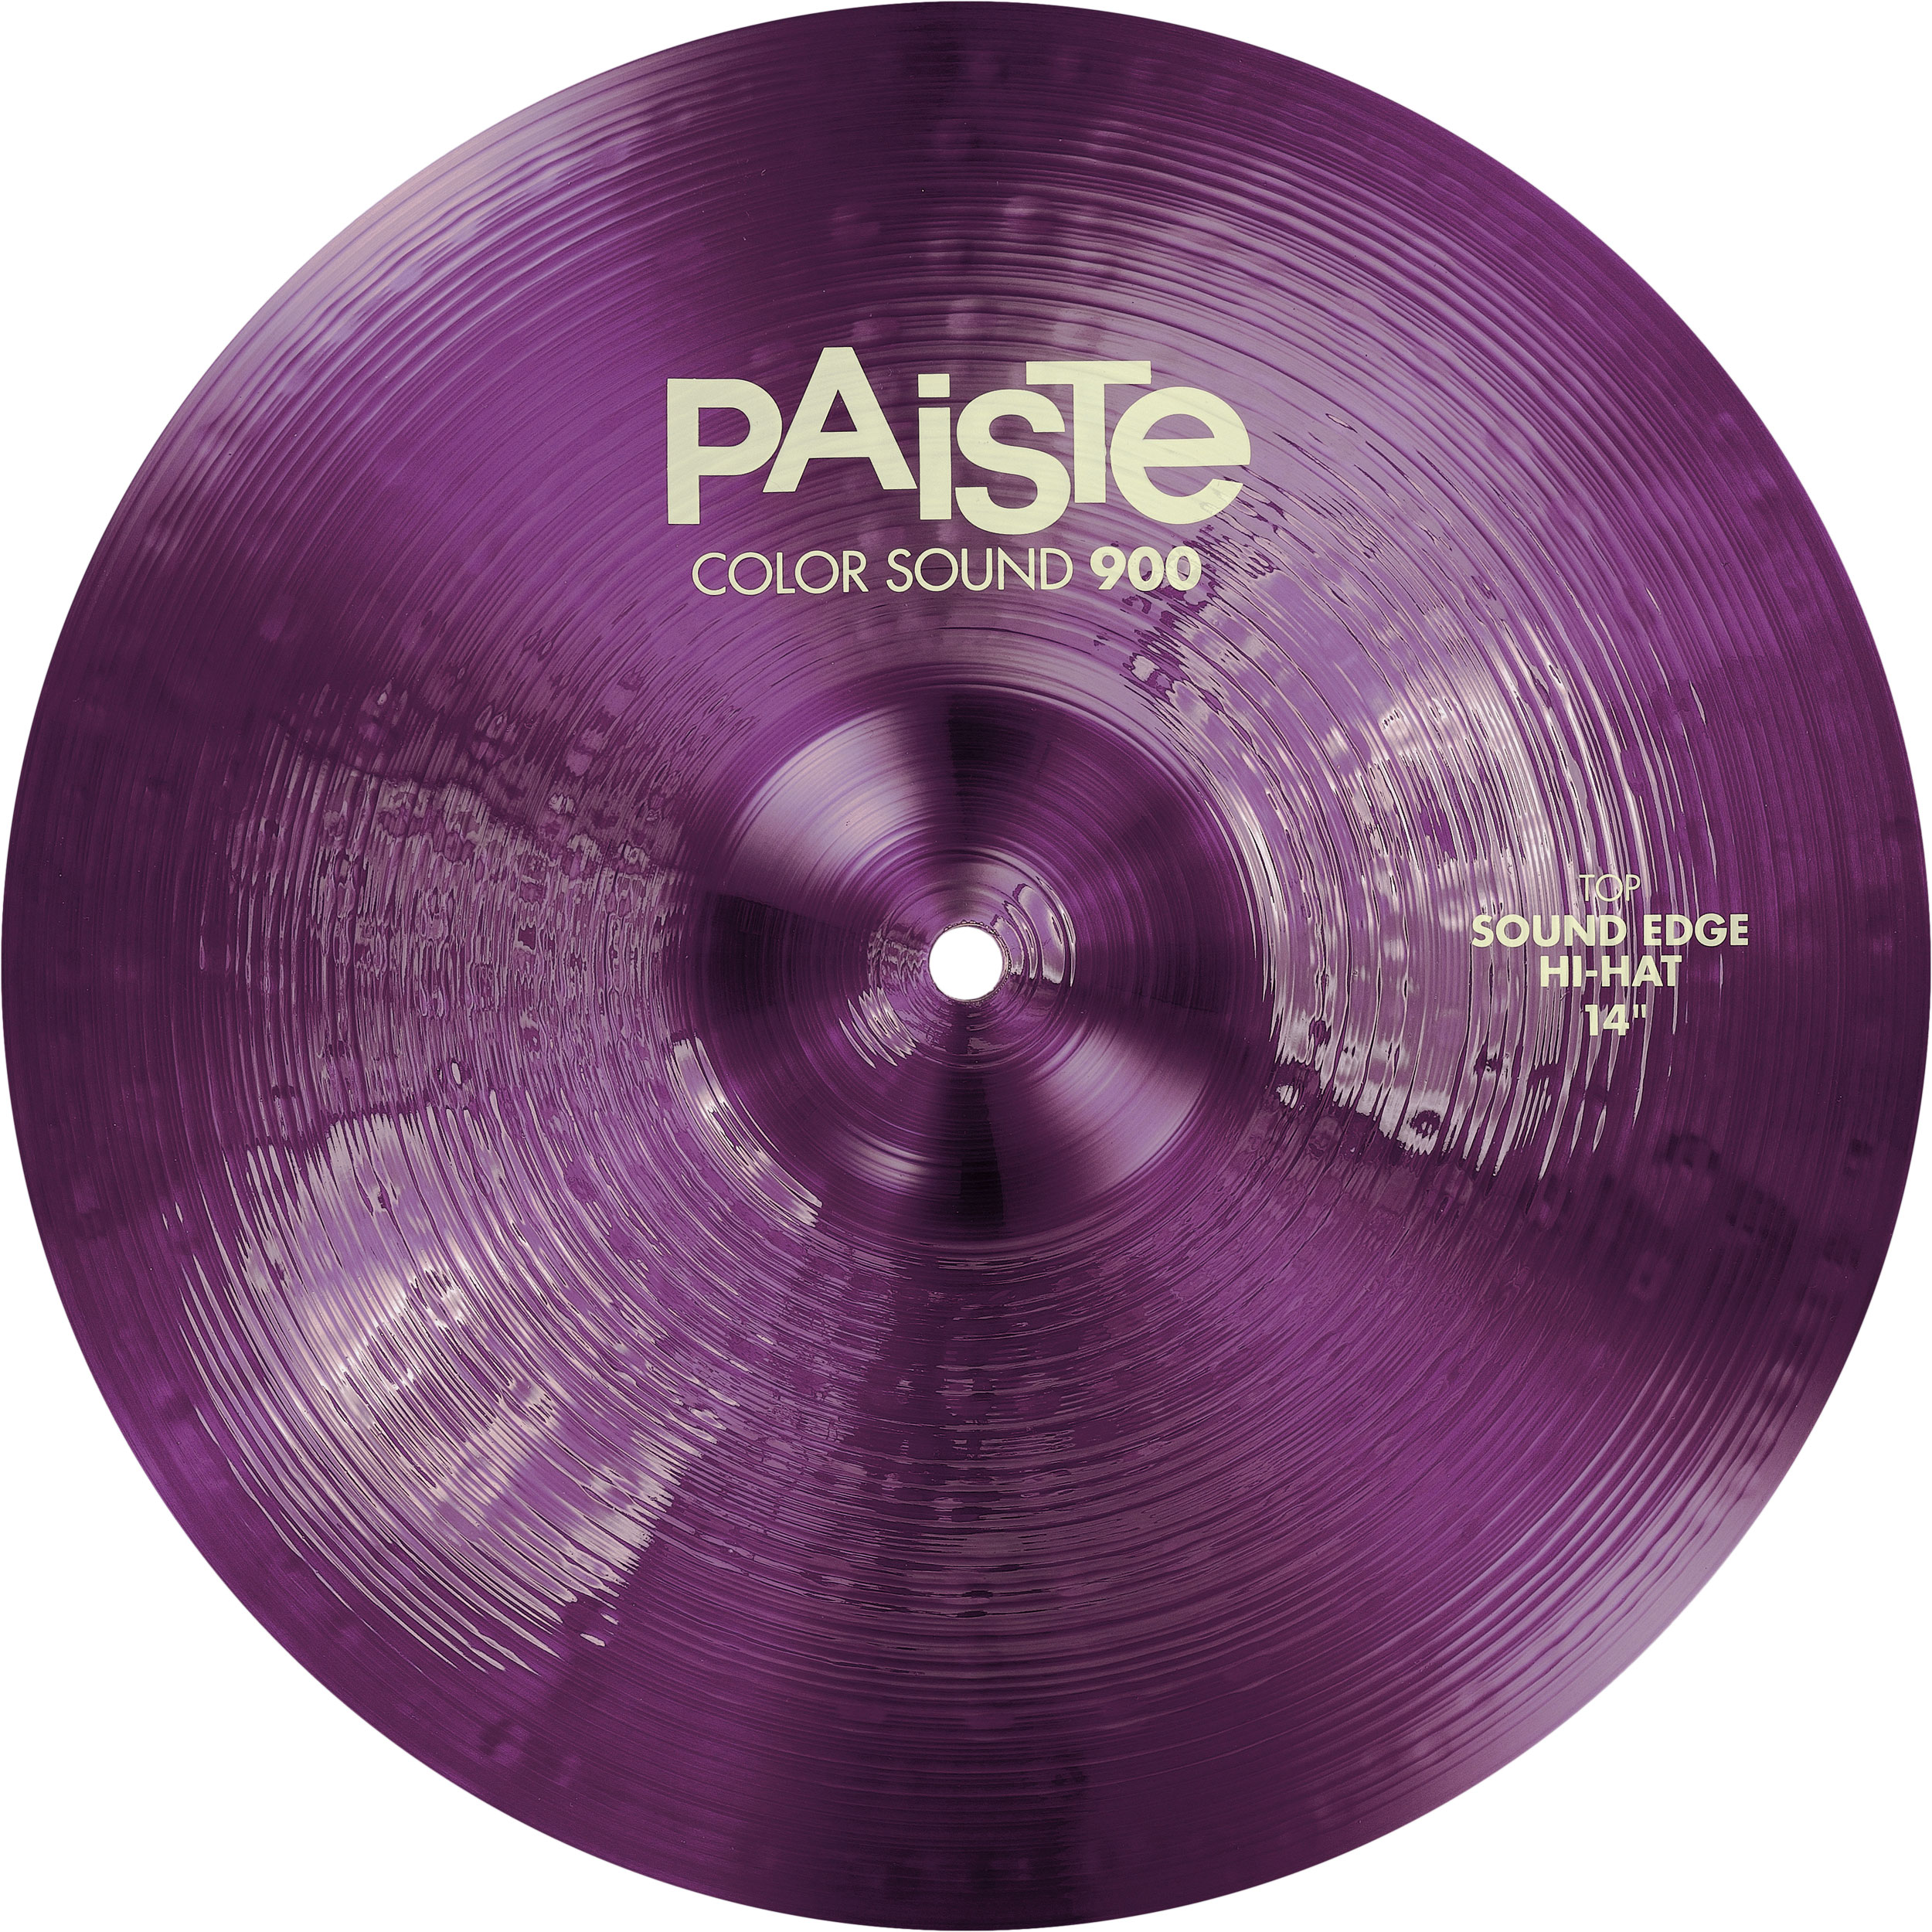 "Paiste 14"" Color Sound 900 Purple Sound Edge Hi Hat Cymbals"